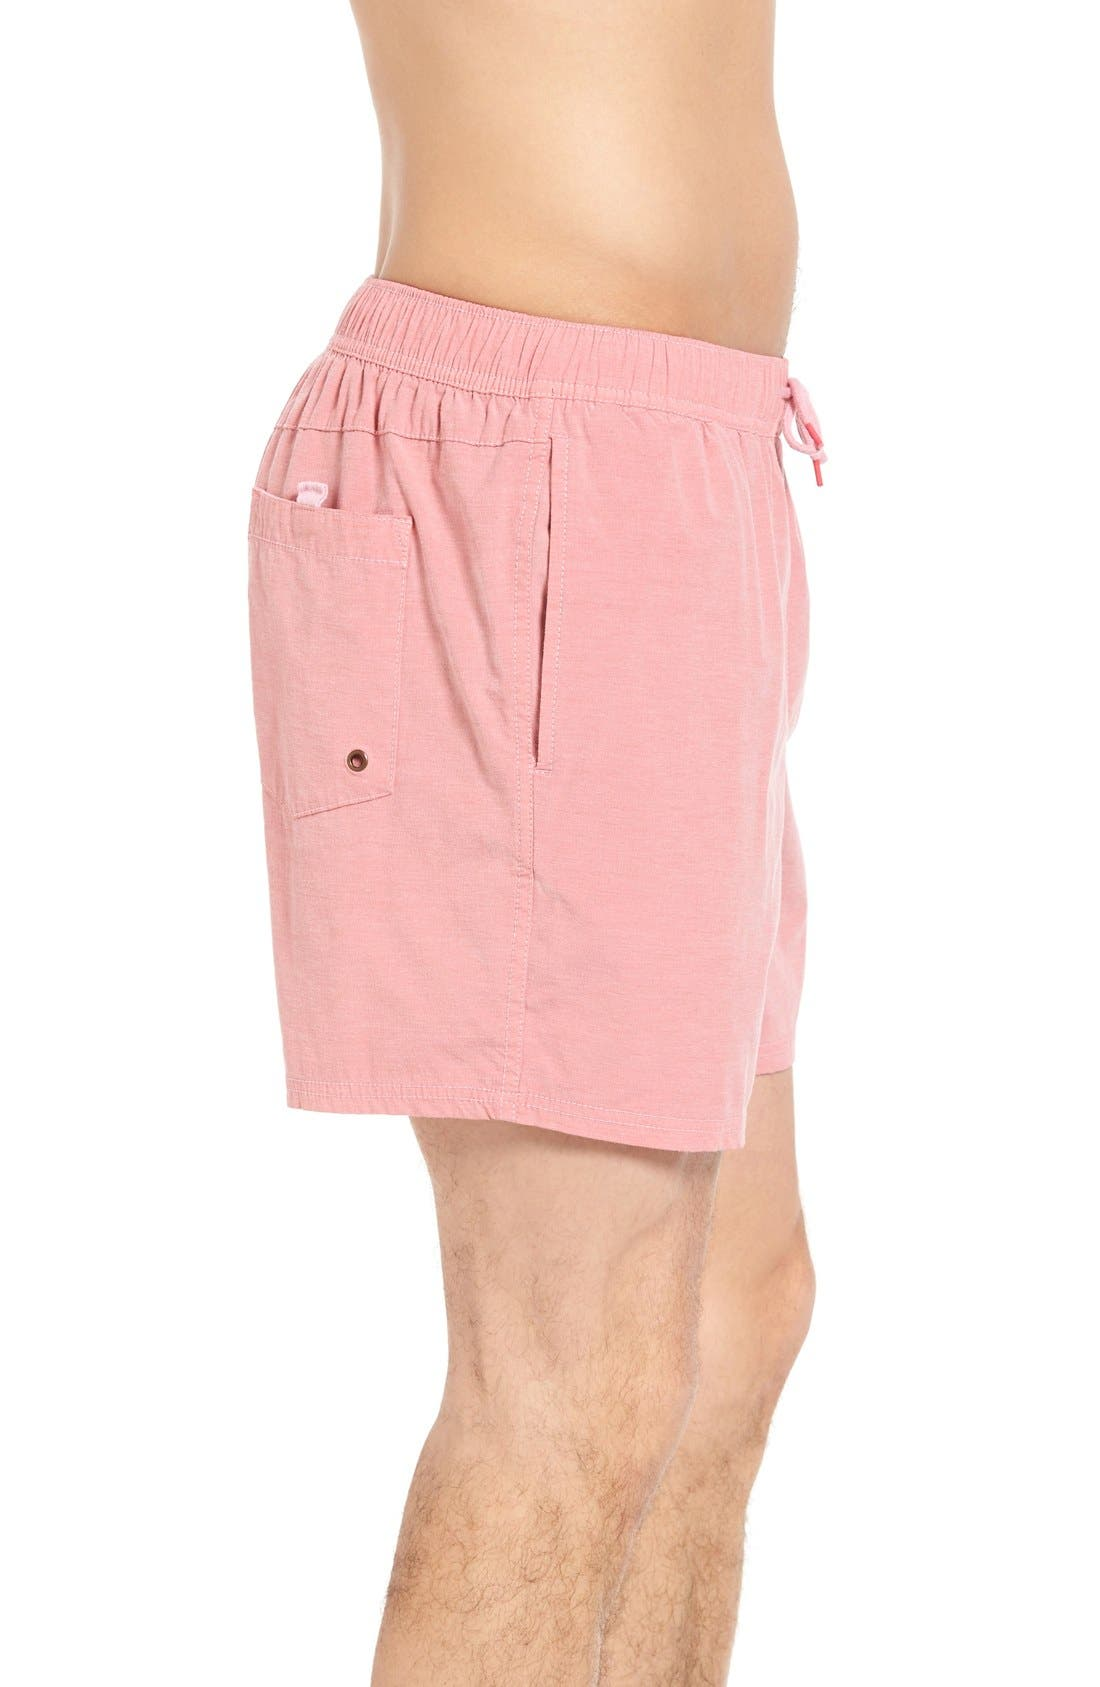 Waikiki Board Shorts,                             Alternate thumbnail 27, color,